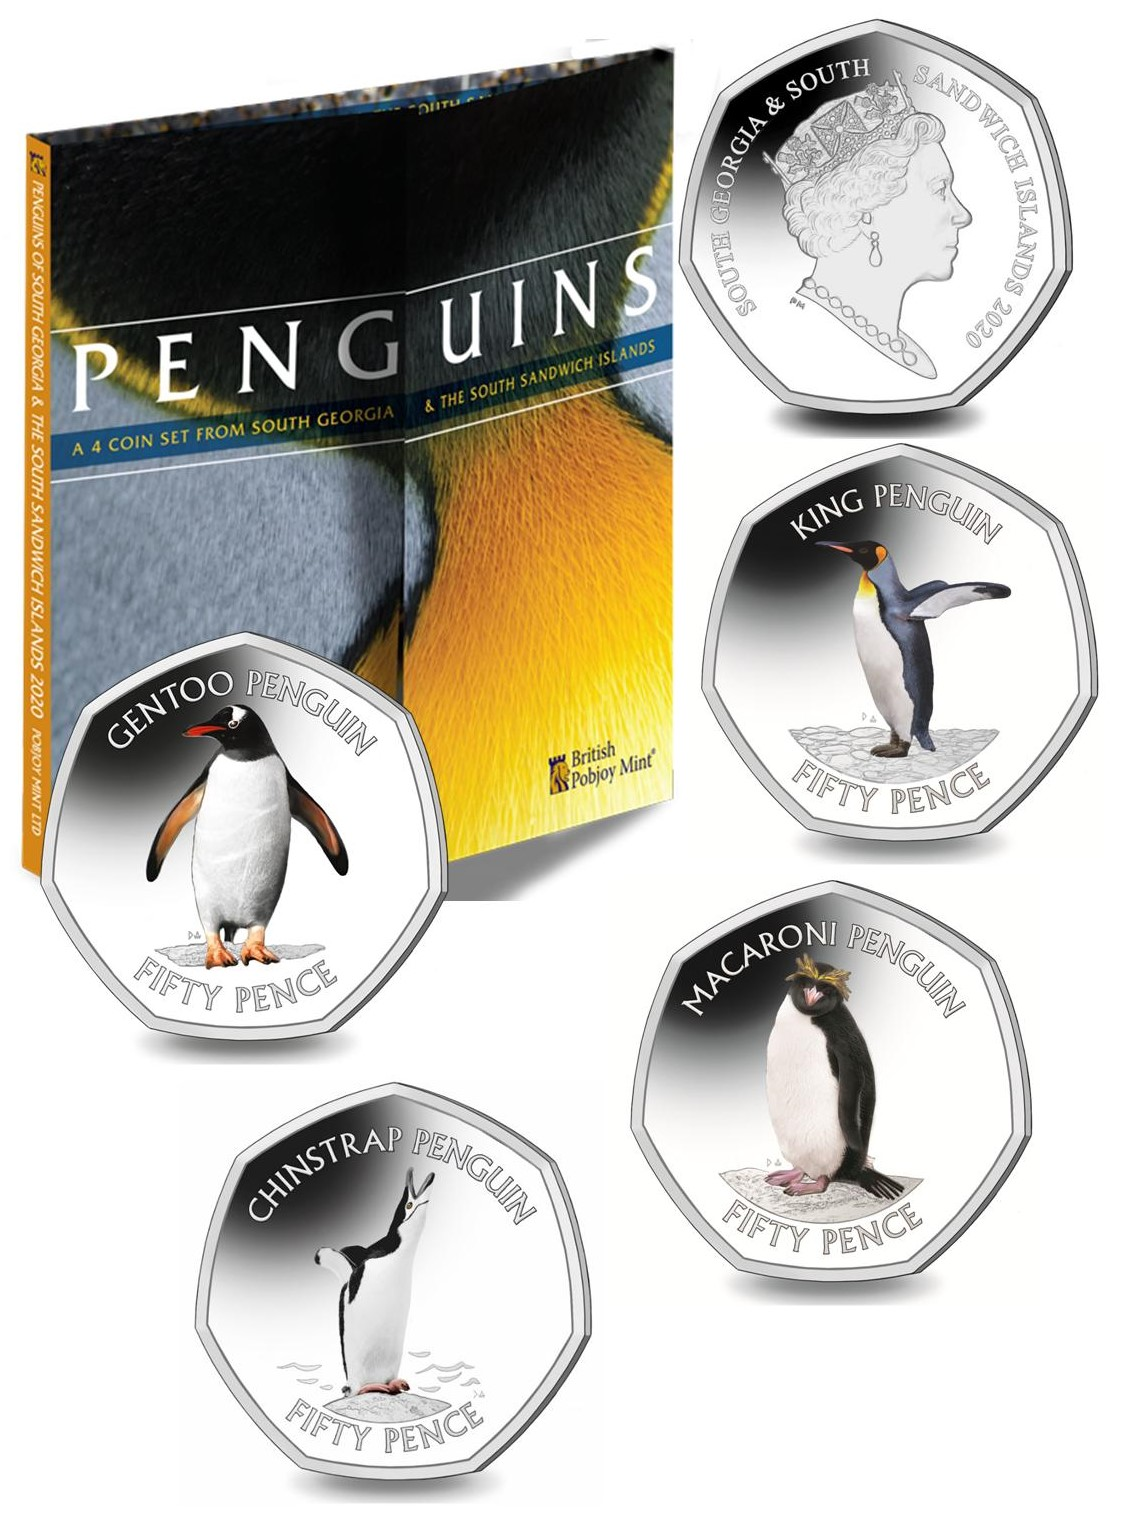 South Georgia 2020 Penguins